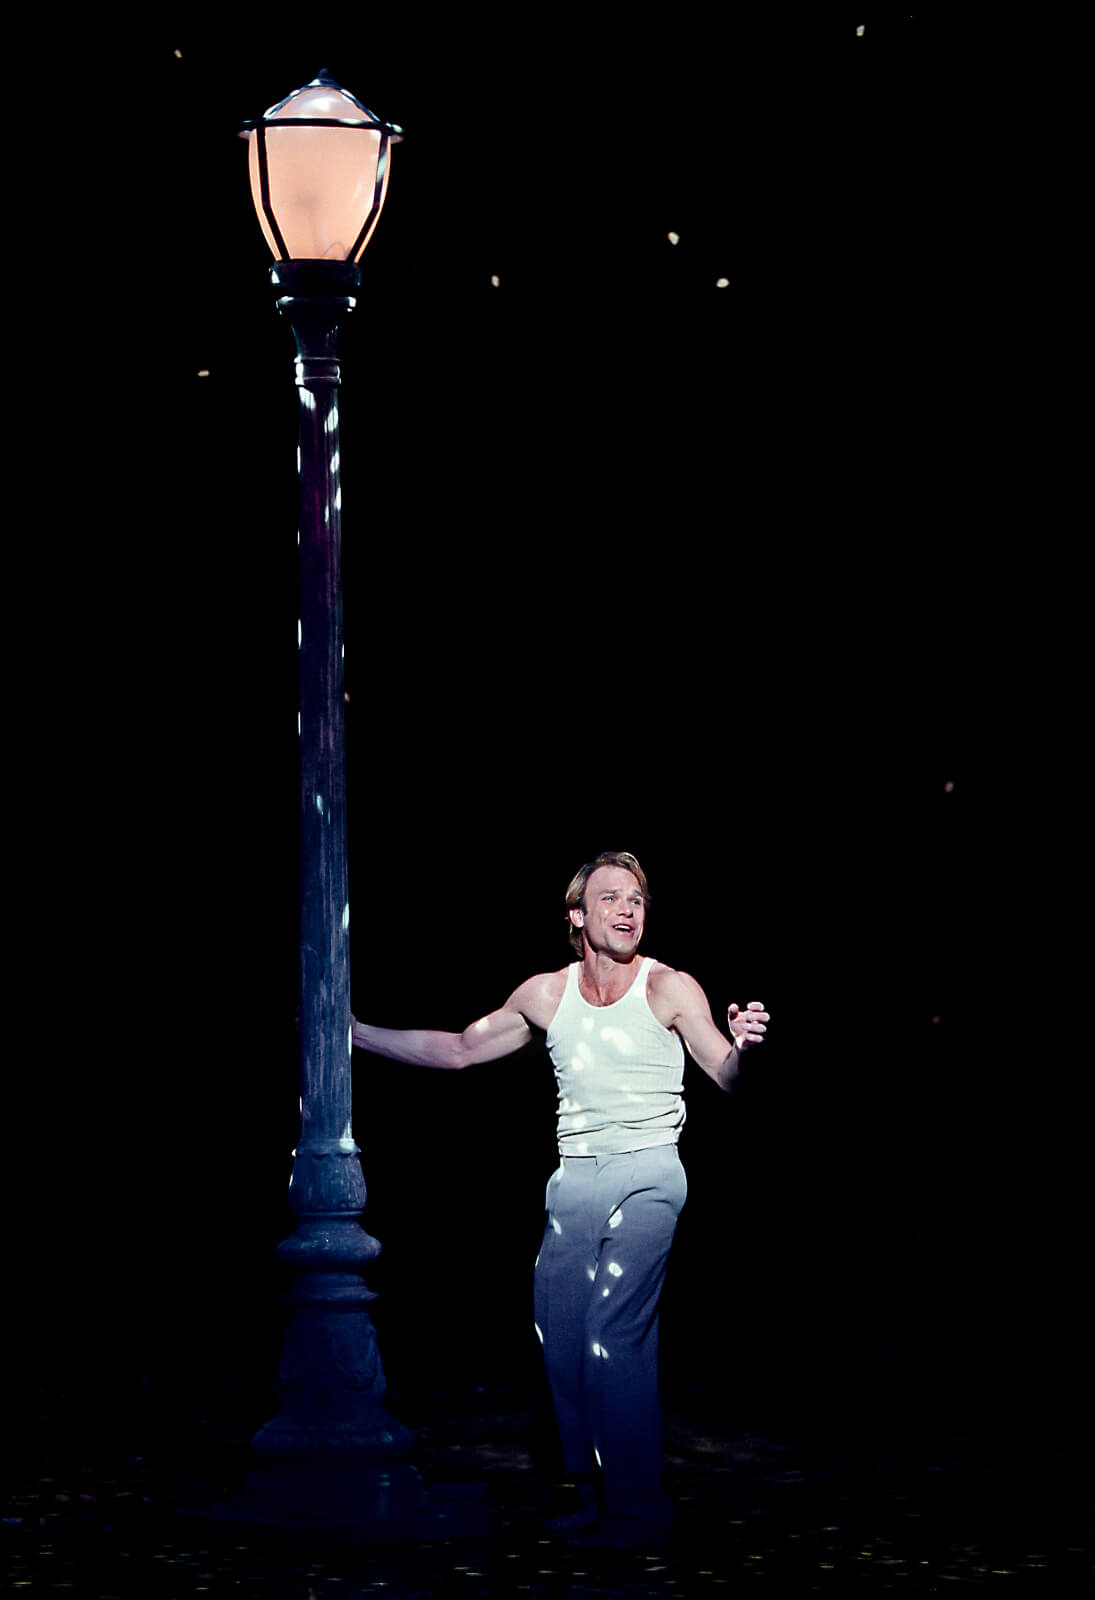 Camille Raquin (Norbert Leo Butz) expressing his feelings beside the lampost.